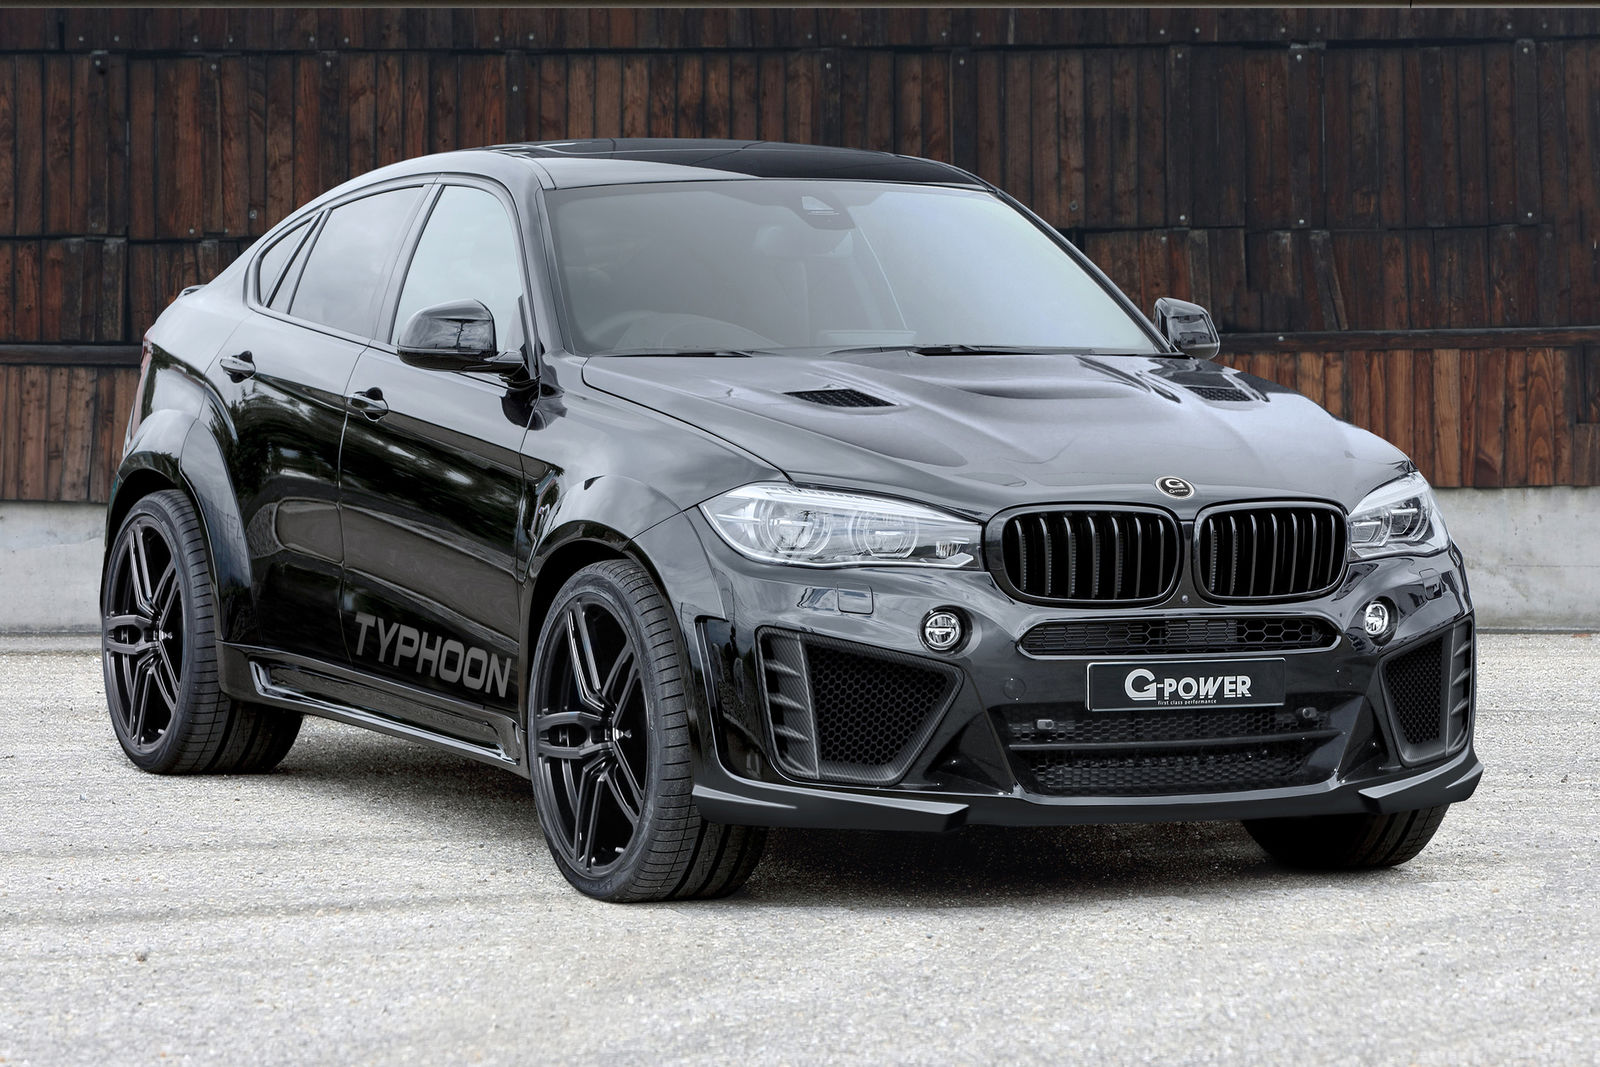 g power unveils bmw x6 m typhoon with 750 hp. Black Bedroom Furniture Sets. Home Design Ideas